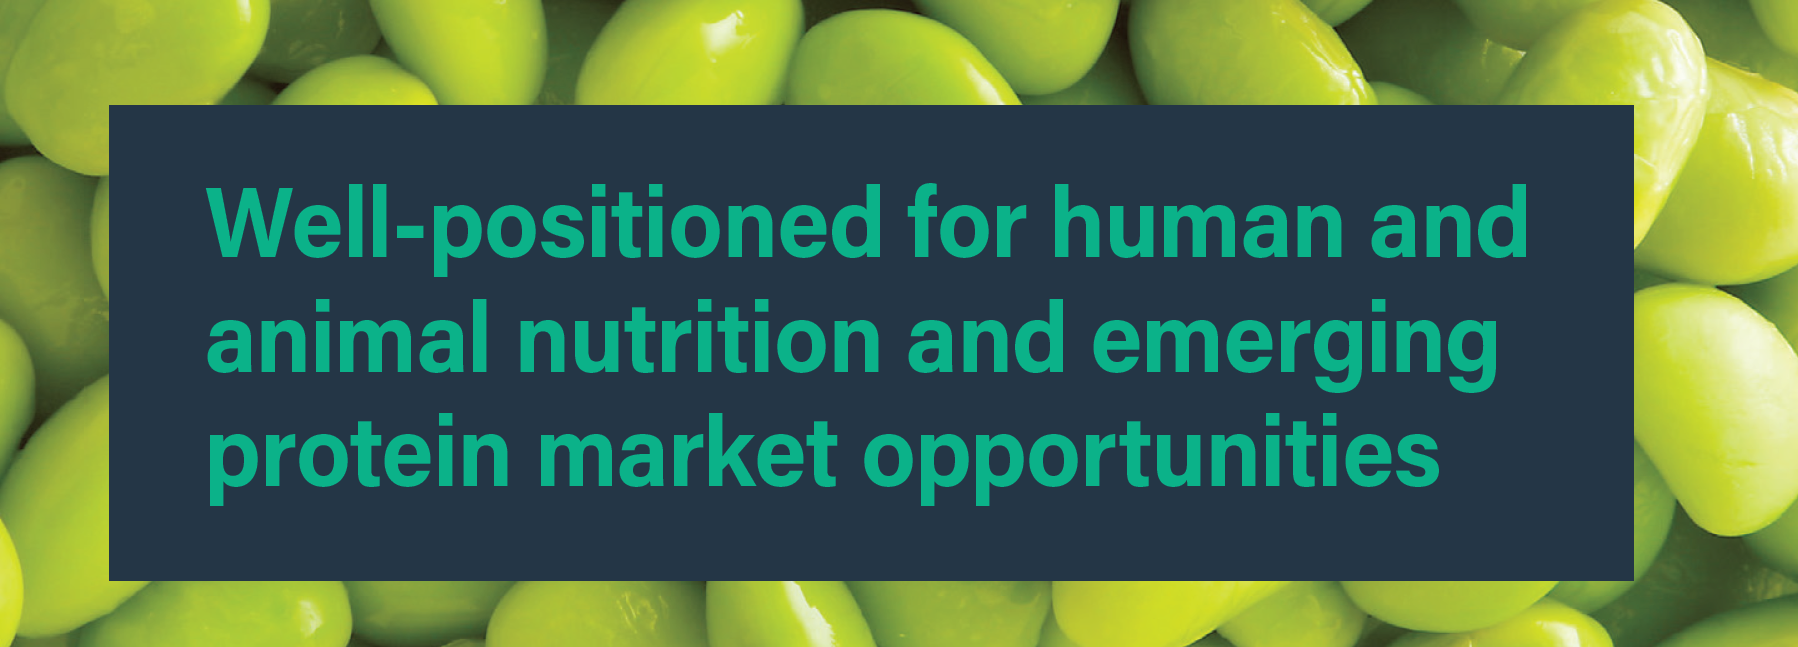 Well-positioned for human and animal nutrition and emerging protein market opportunities